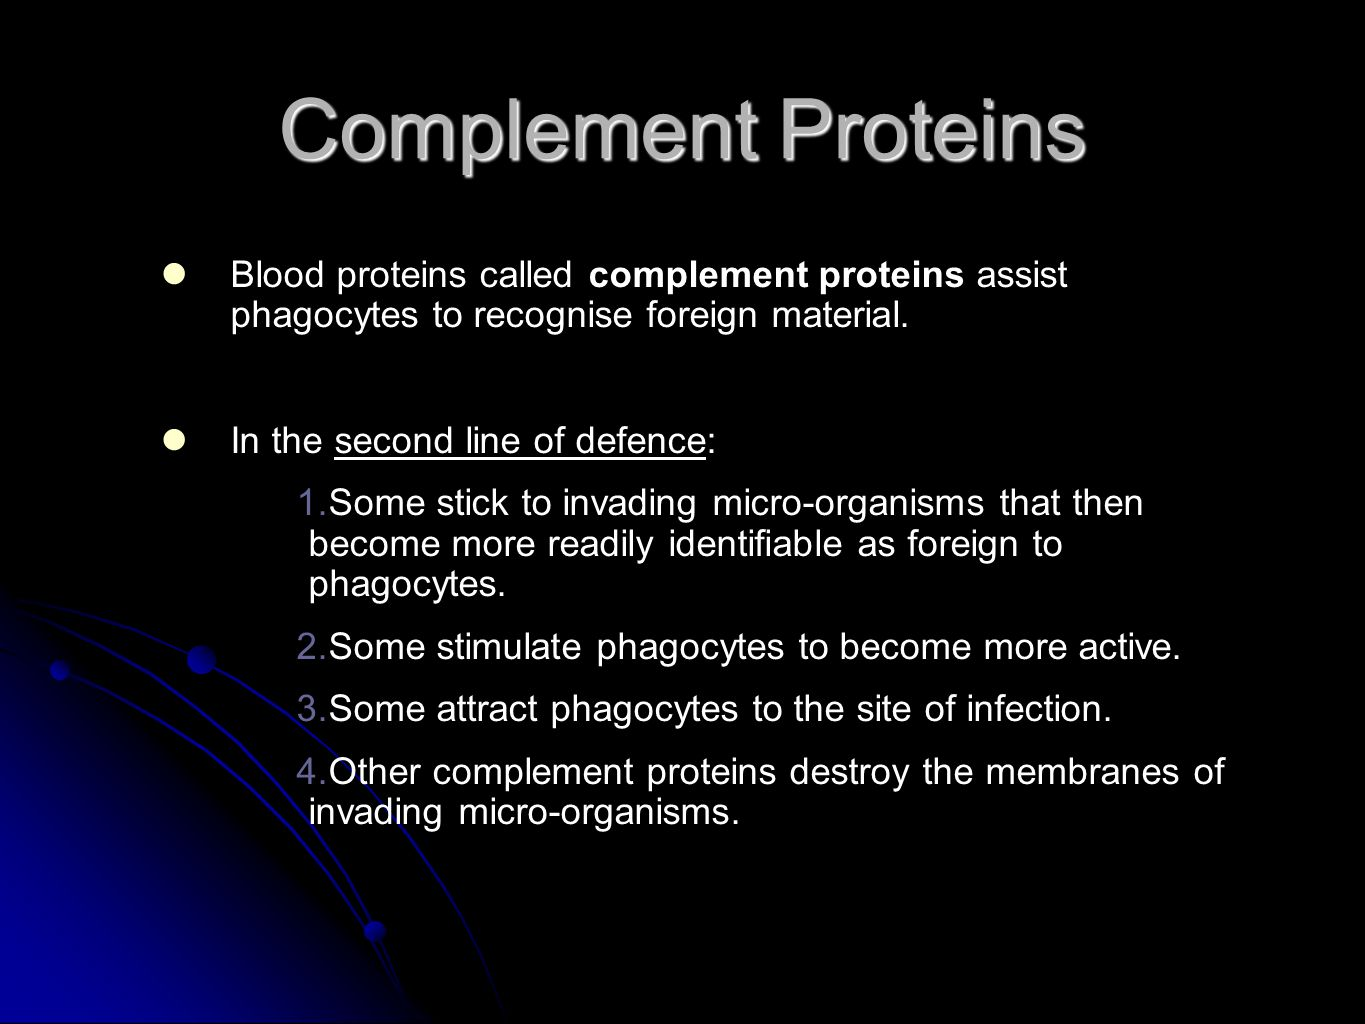 Complement Proteins Blood proteins called complement proteins assist phagocytes to recognise foreign material.